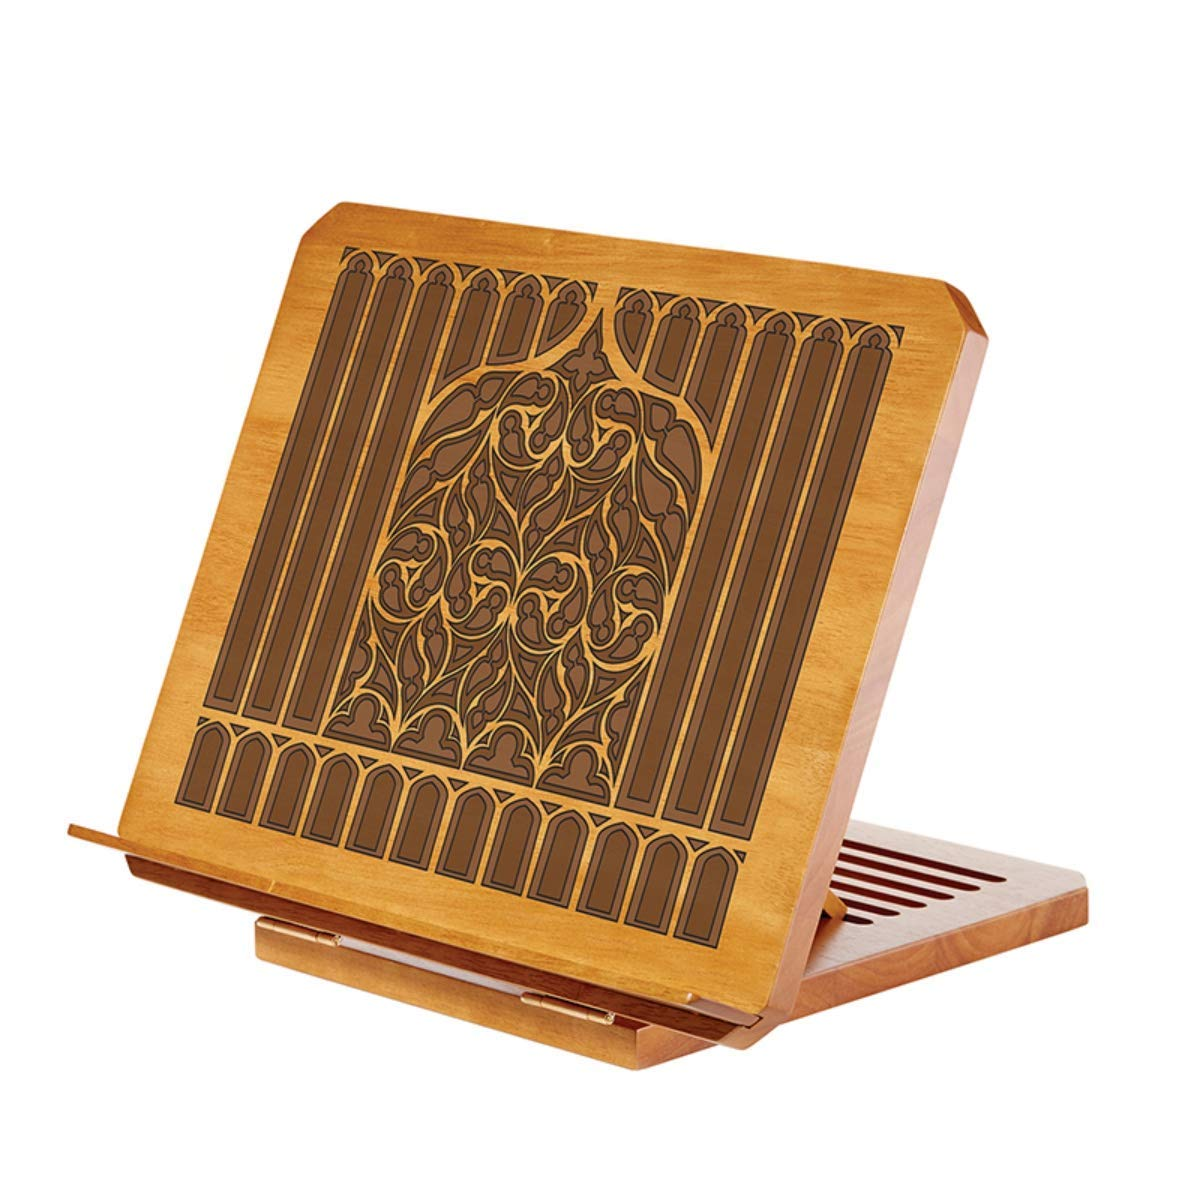 Wood Tree of Life Adjustable Table Top Book Stand, 16 Inch (Walnut) by Bible Holder